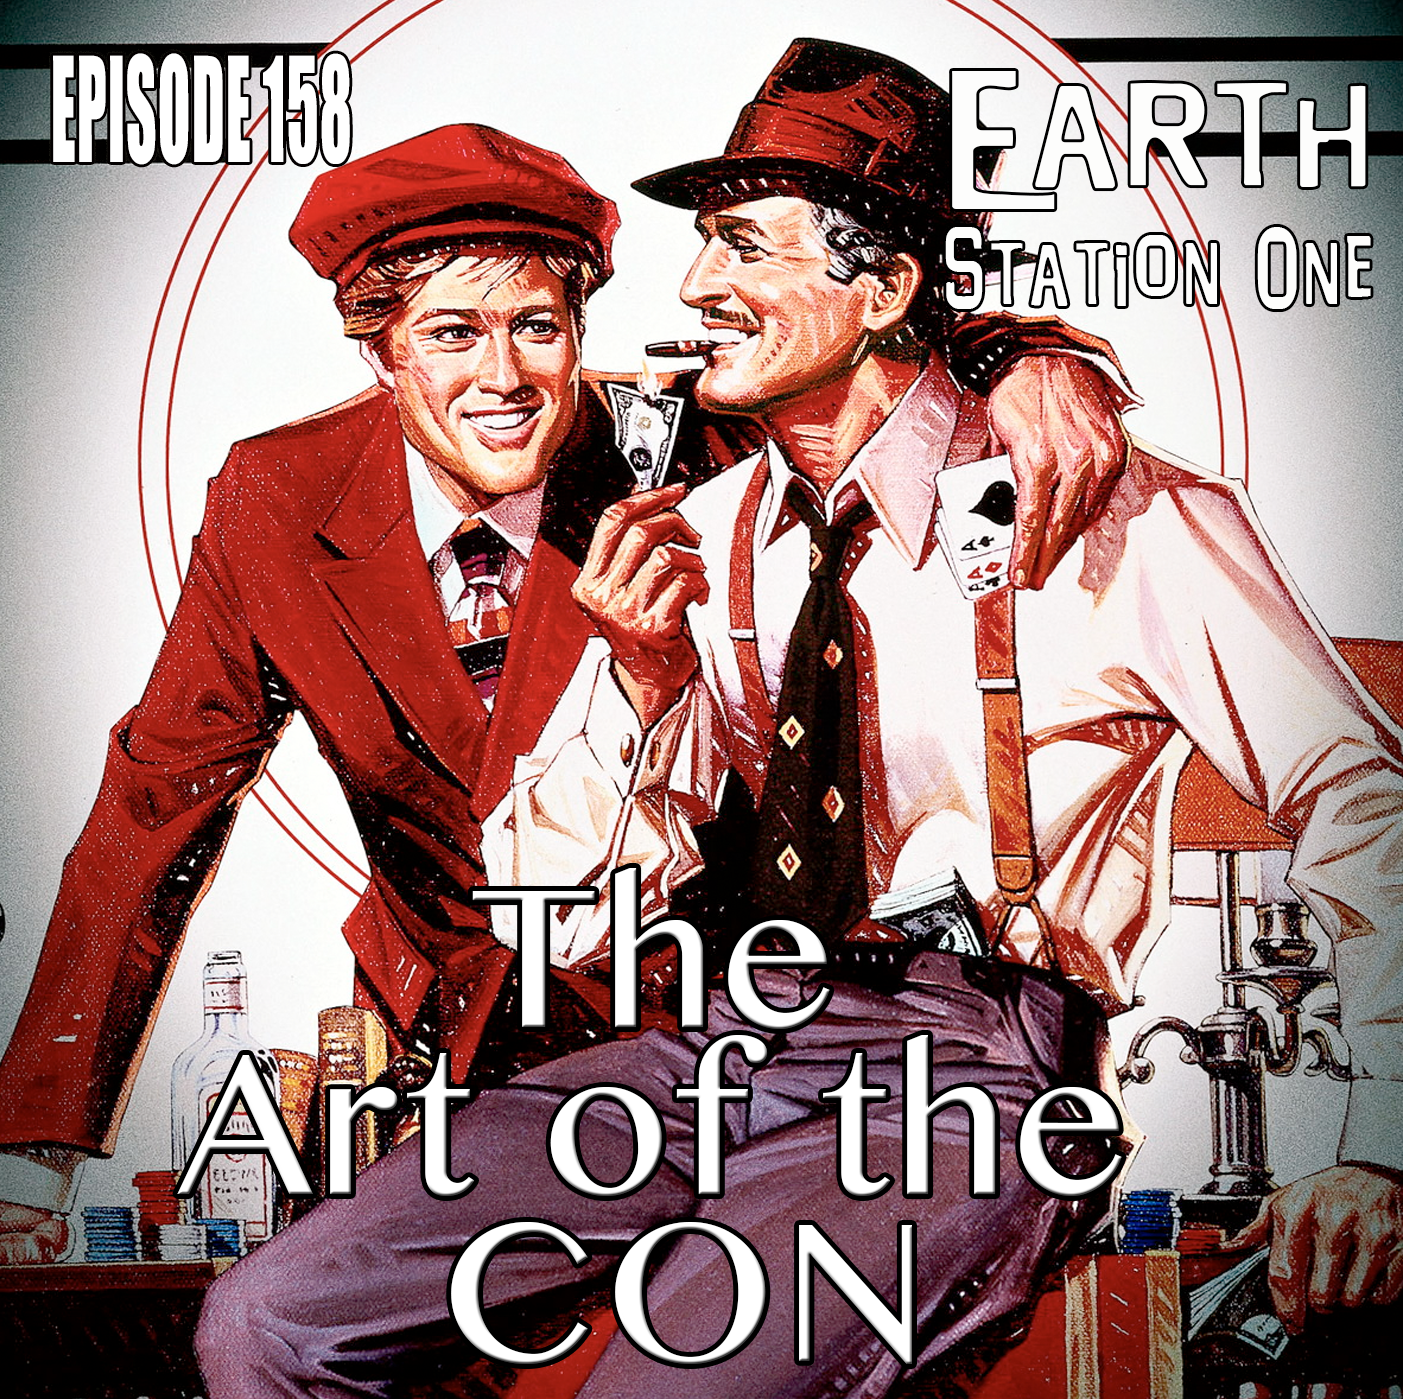 Earth Station One Episode 158 - The Art of the Con